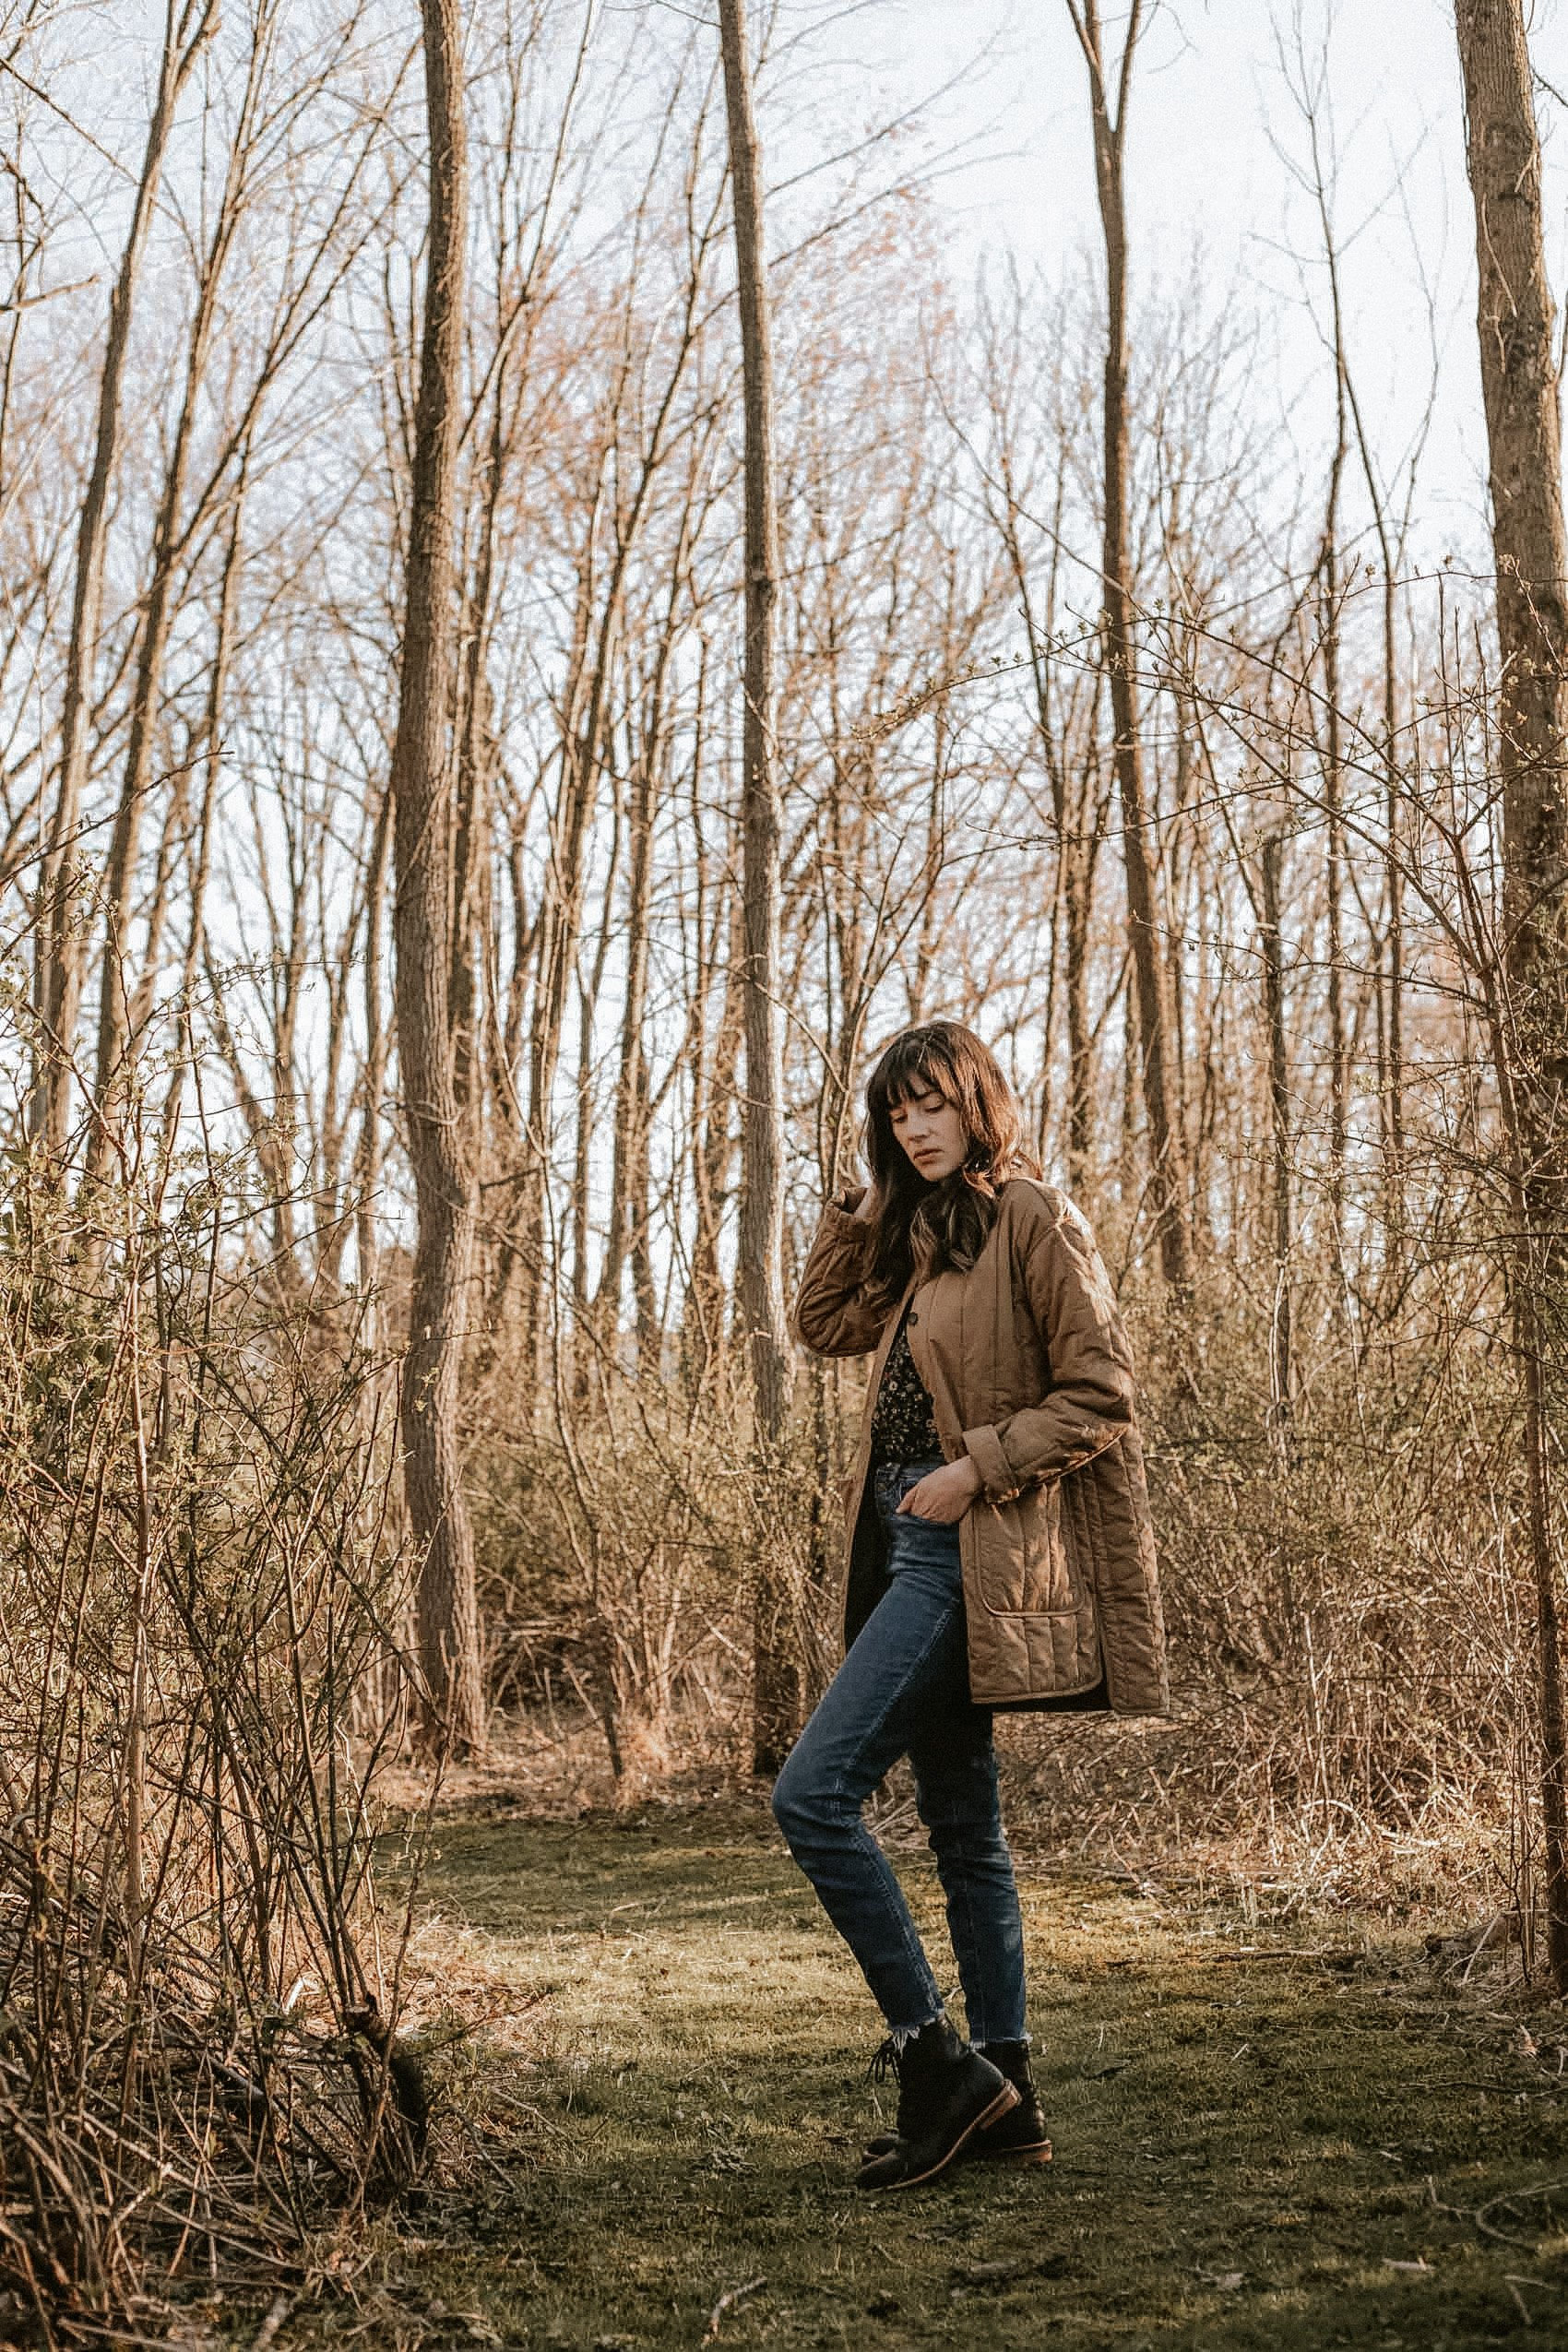 Everlane Cotton Quilted Jacket with Everlane Denim and Nisolo Boots on Fashion Blogger standing in the woods